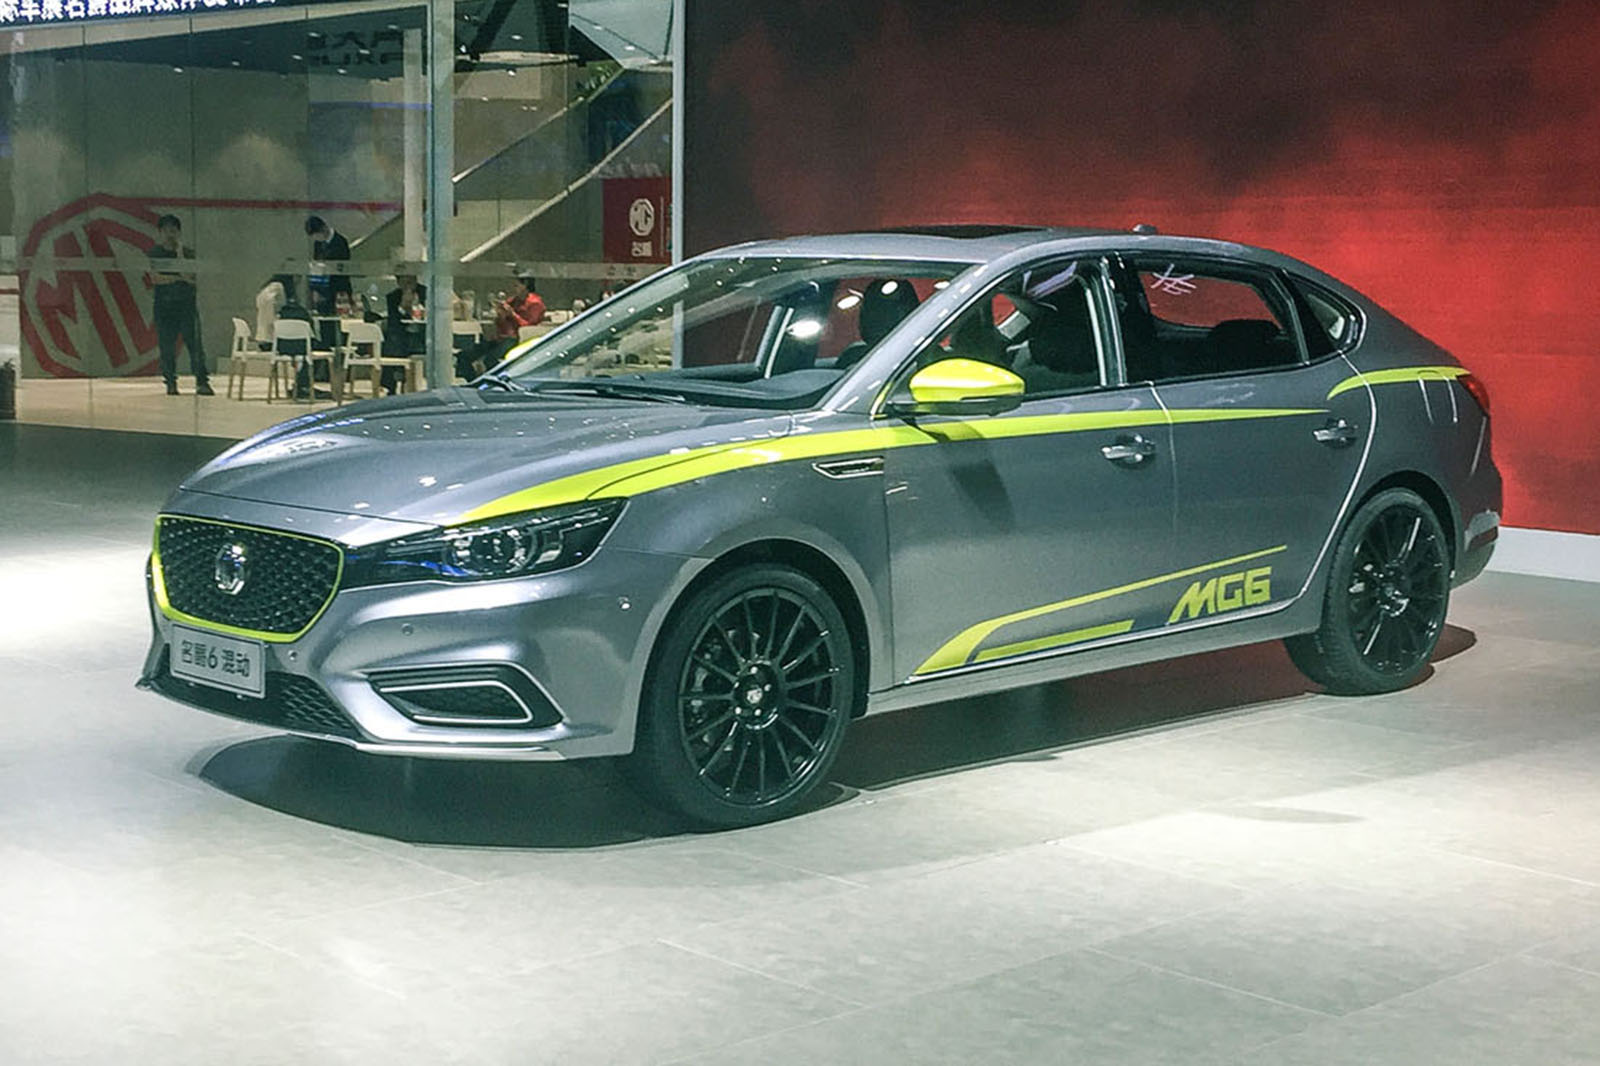 new mg 6 revealed for chinese market ahead of 2018 uk launch | autocar